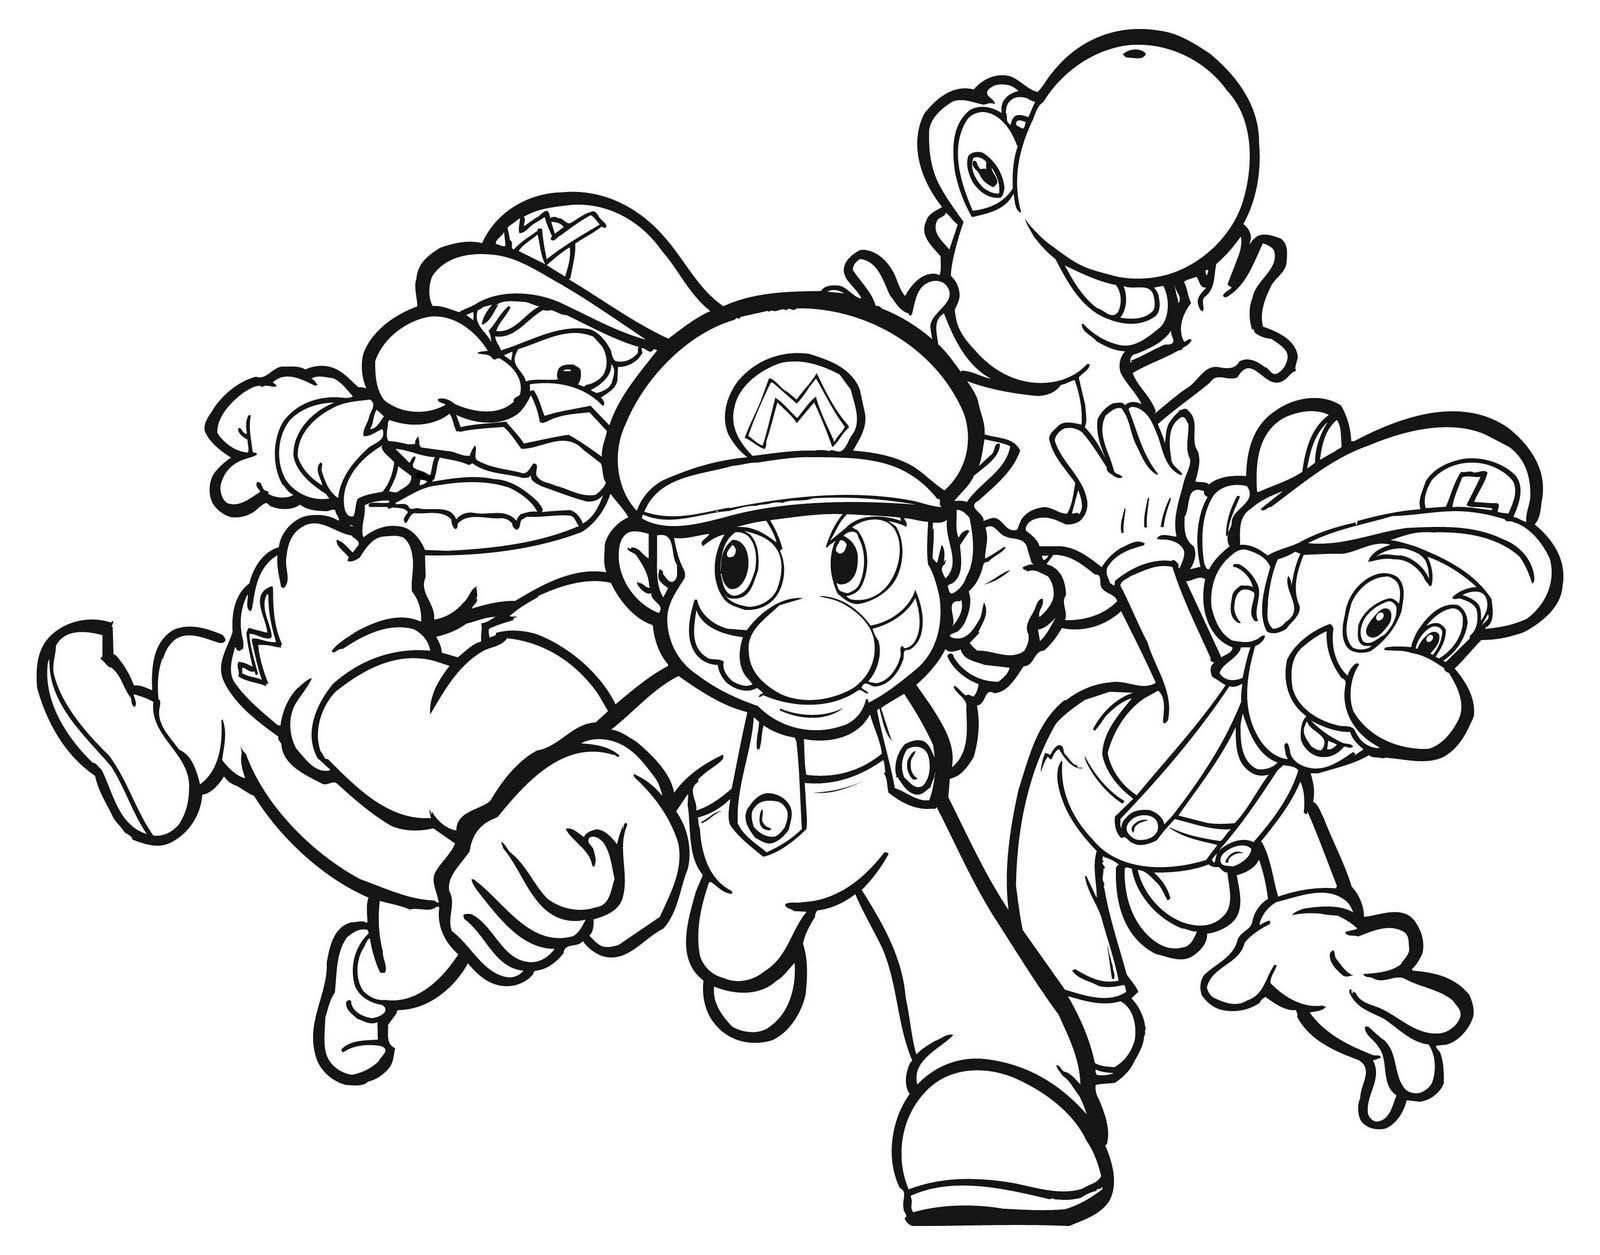 Collection of thousands of Mario Coloring Page from all